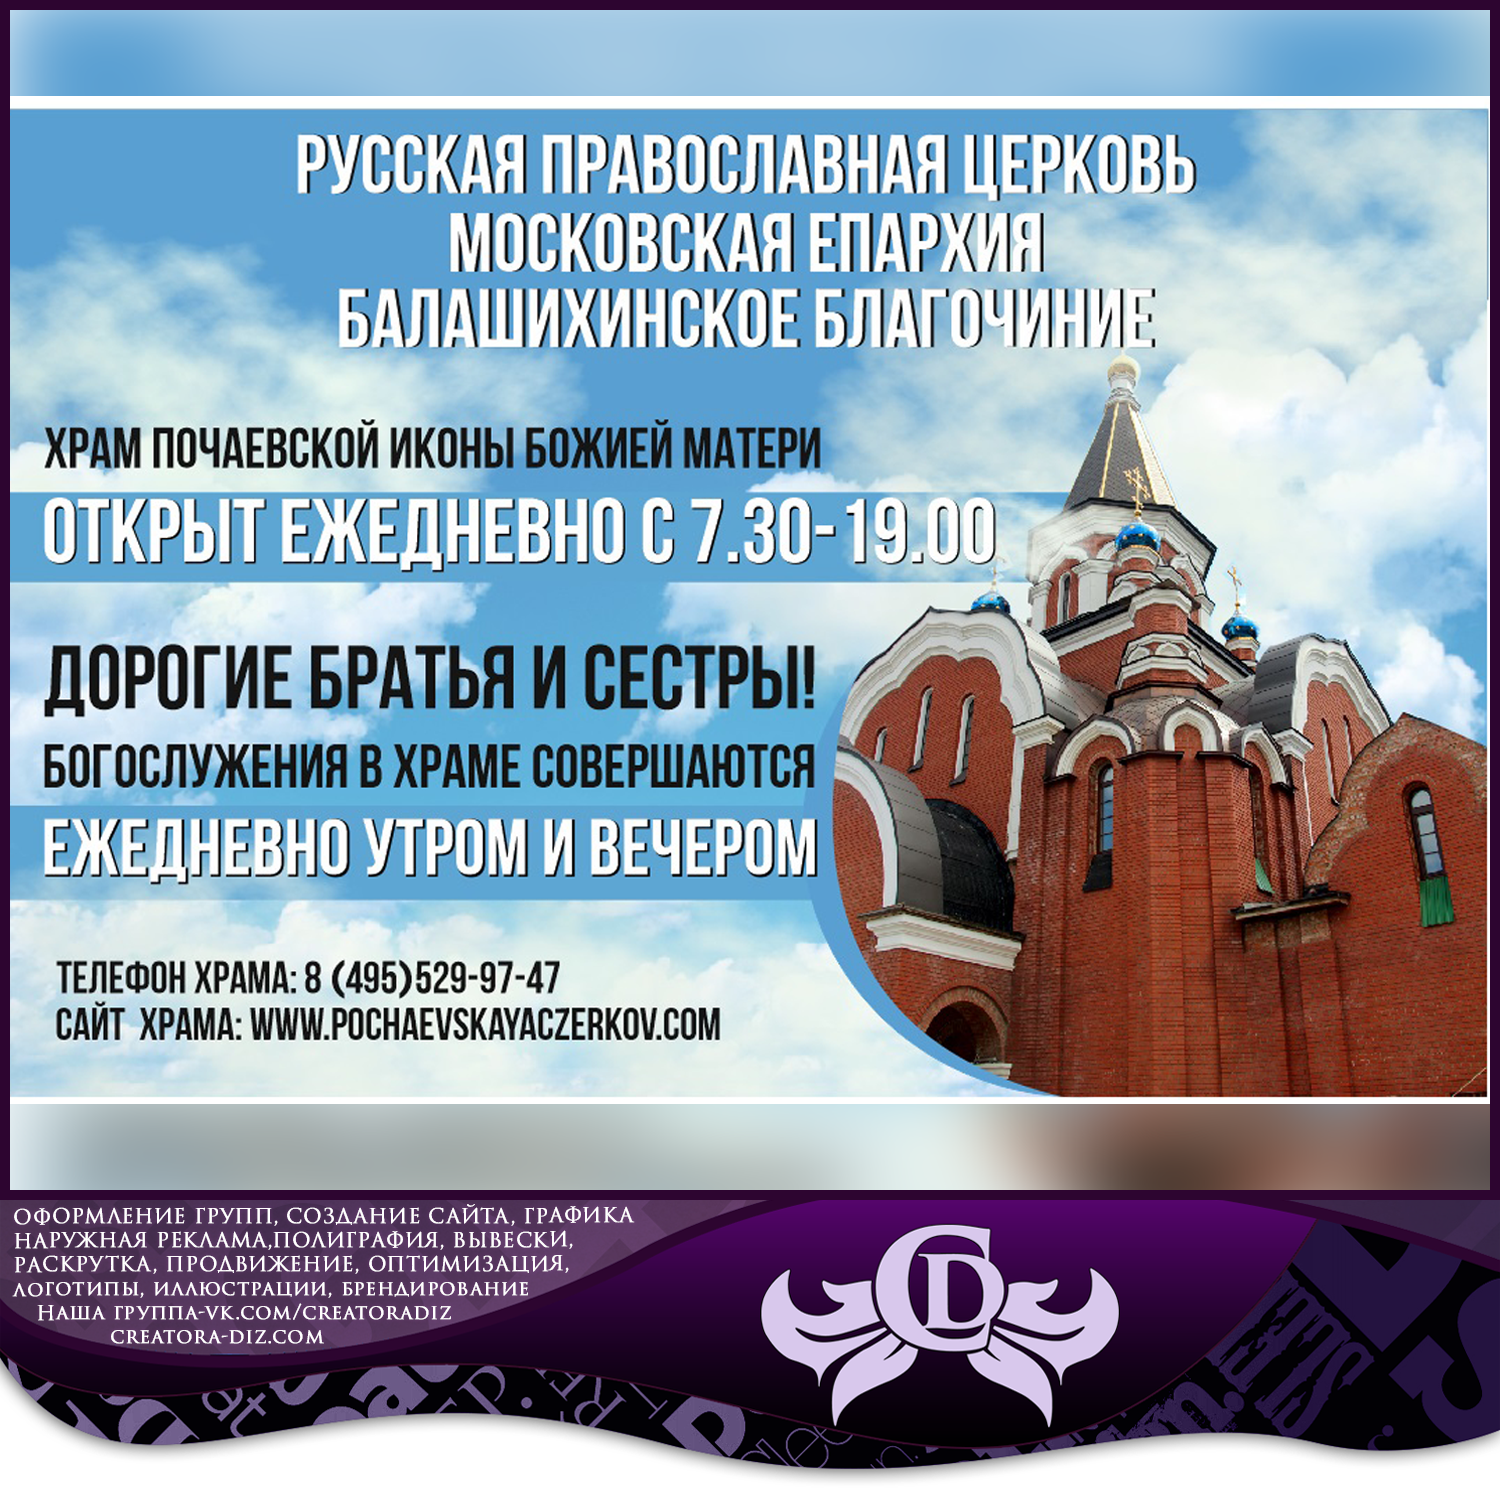 http://images.vfl.ru/ii/1531394141/a9bbdd52/22454176.png